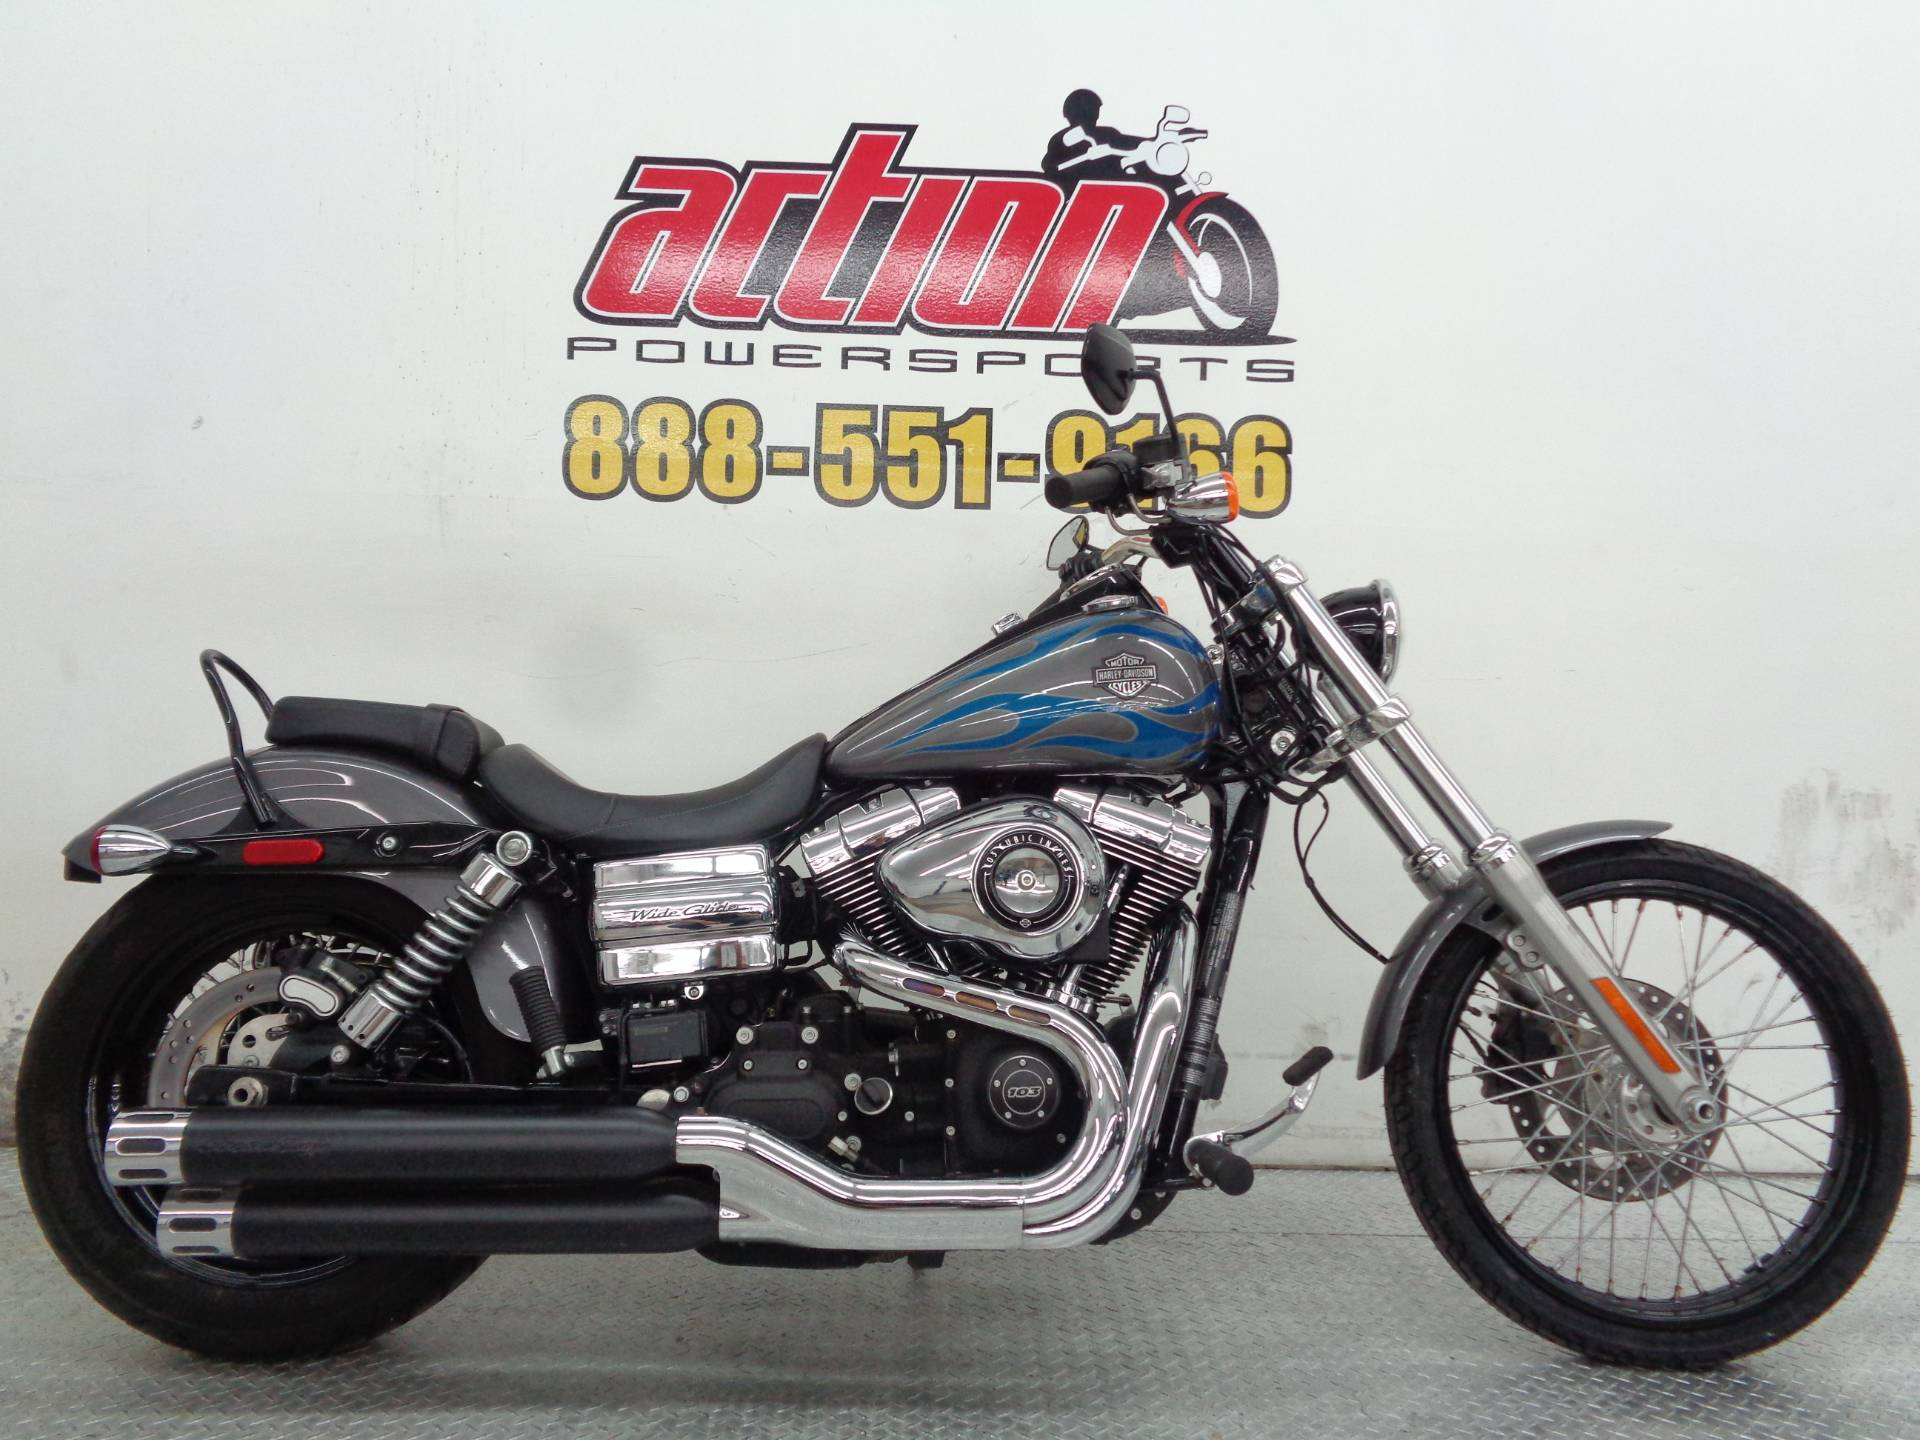 Used 2014 Harley-Davidson Dyna® Wide Glide® Motorcycles in Tulsa, OK ...